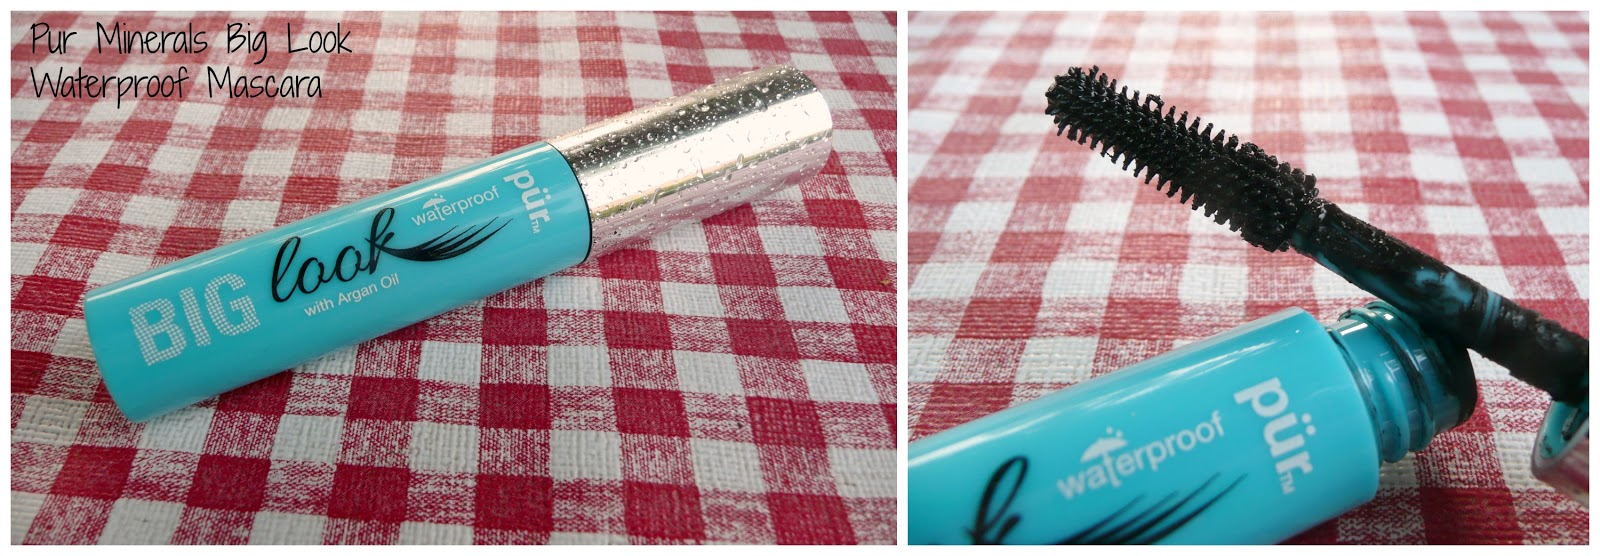 Pur Minerals Big Look Mascara Review